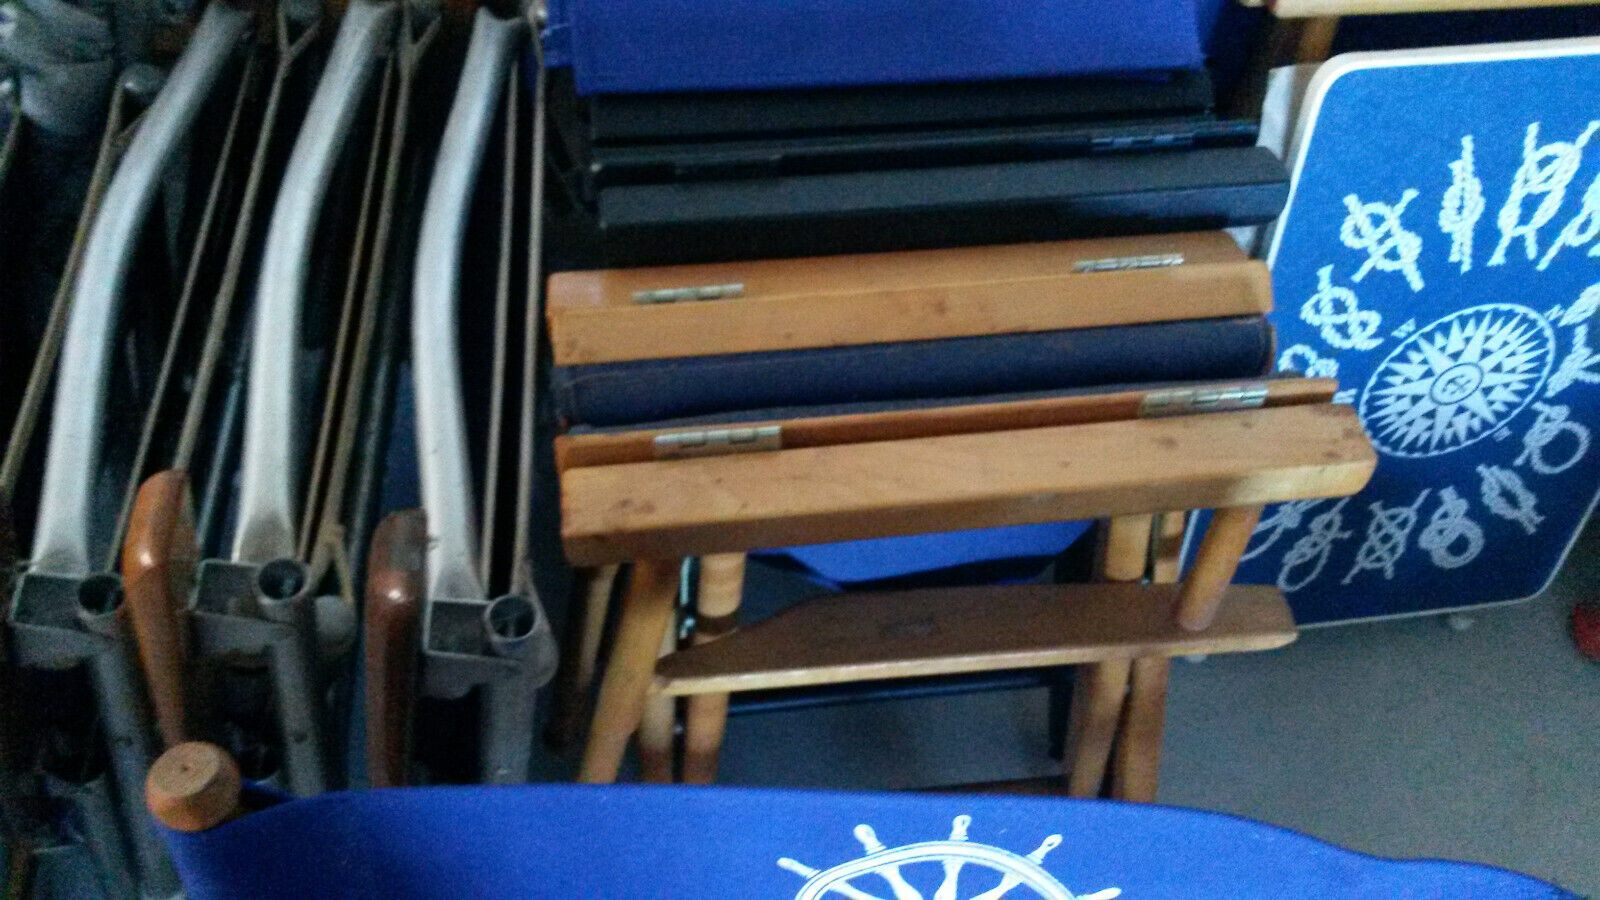 Marine/Boat 5 Directors Chairs By Telescope Hardwood Frames 1970 s New/Old Stock - $850.00